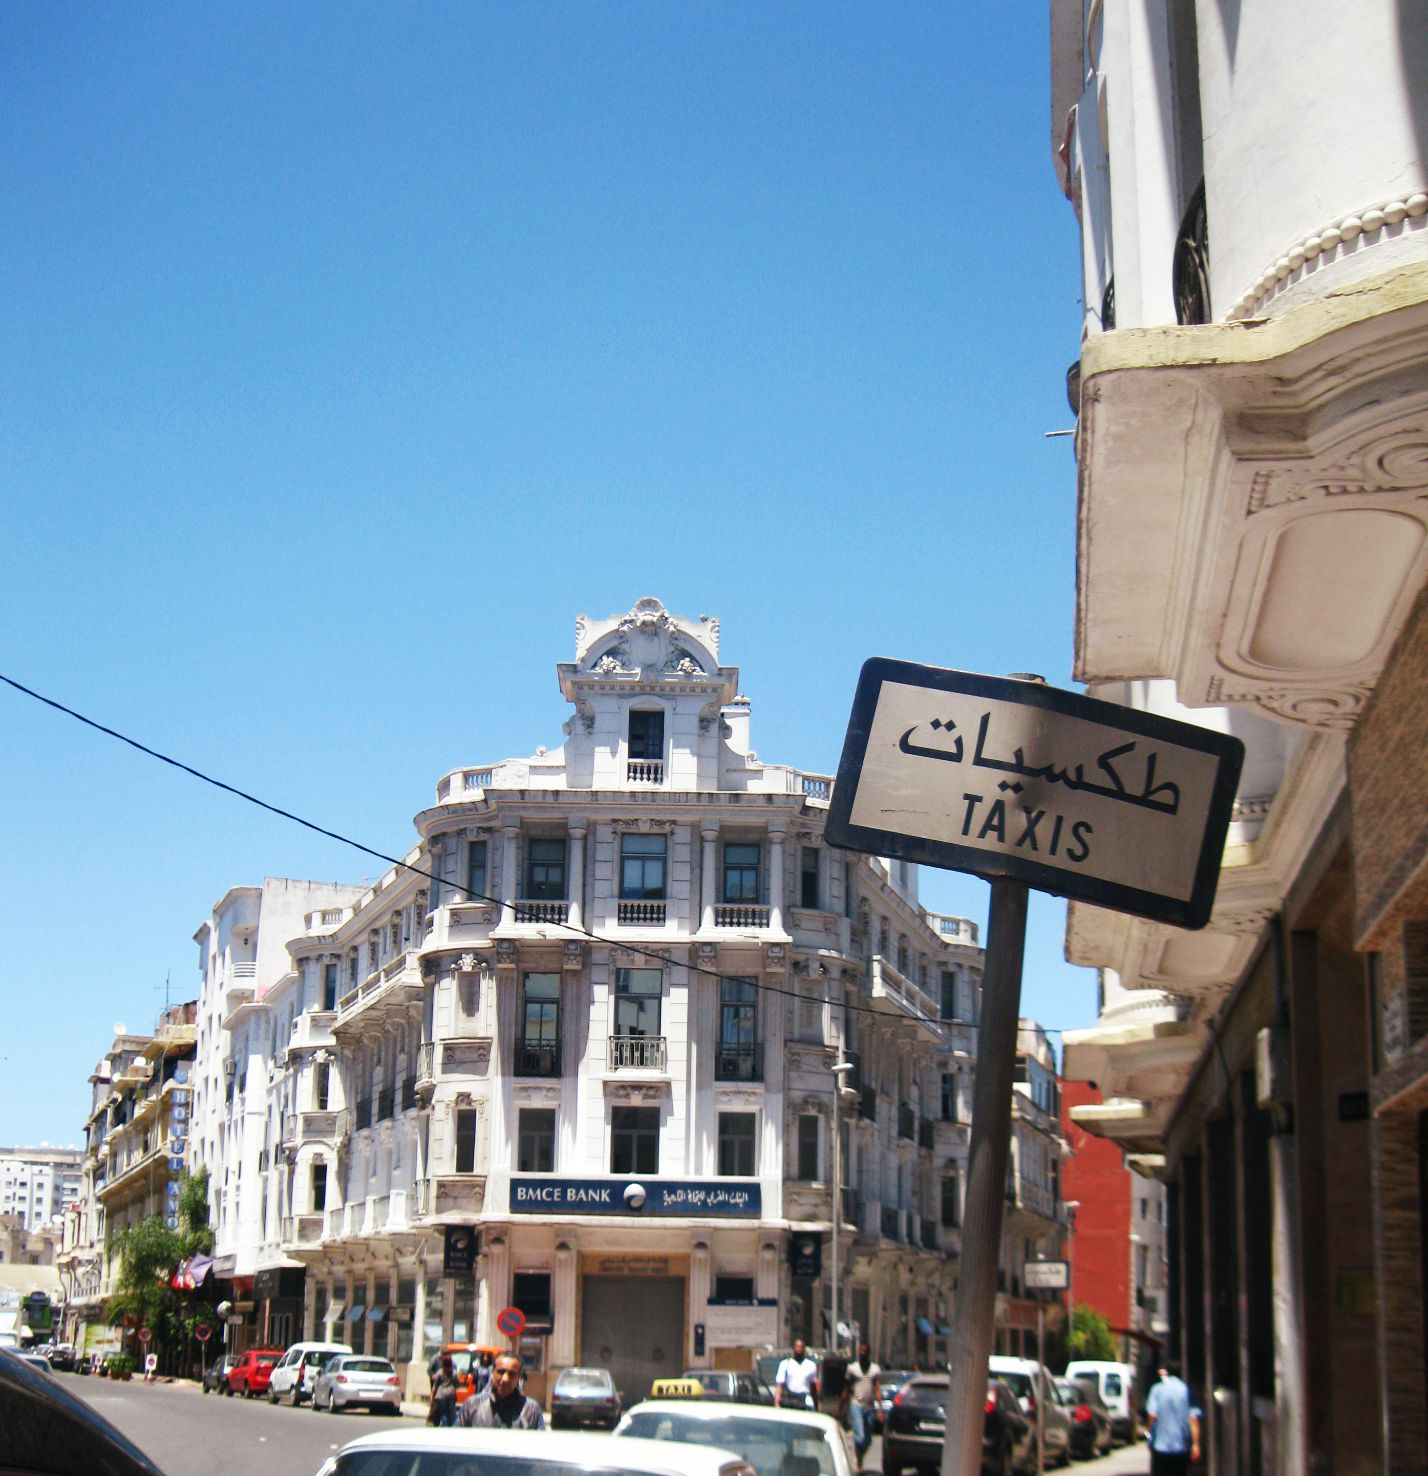 Downtown Casablanca, where signs are in Arabic, French, and often Tamazight (Berber).